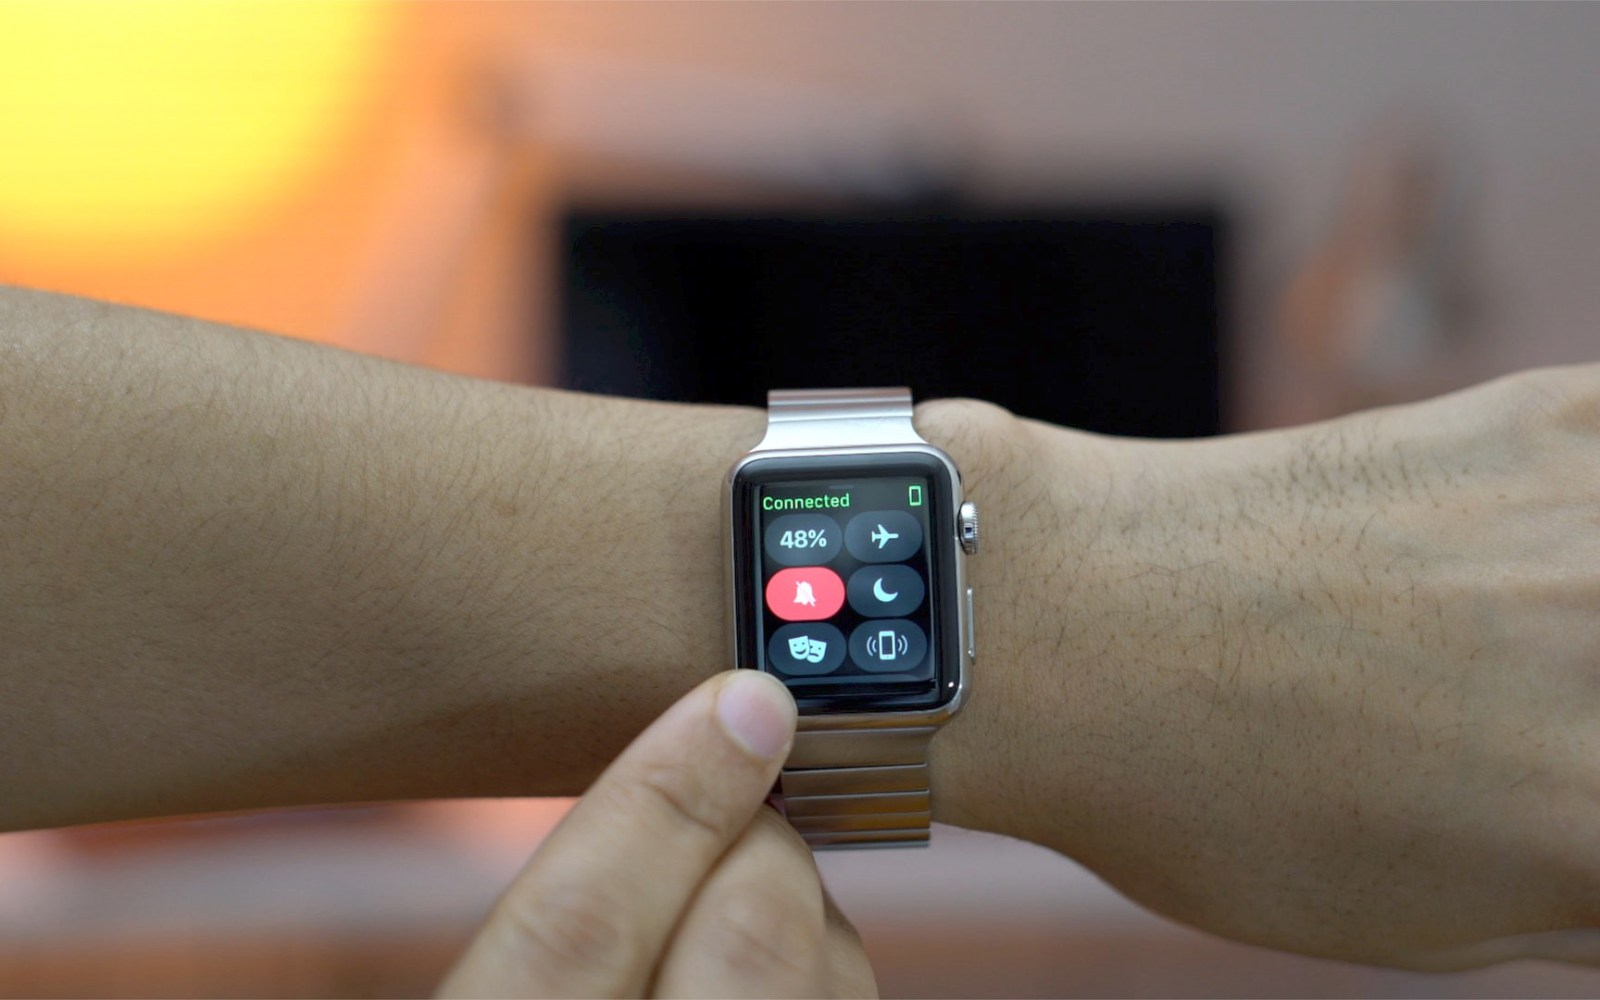 watchOS 3.2 with Theater Mode and SiriKit for Apple Watch is now available